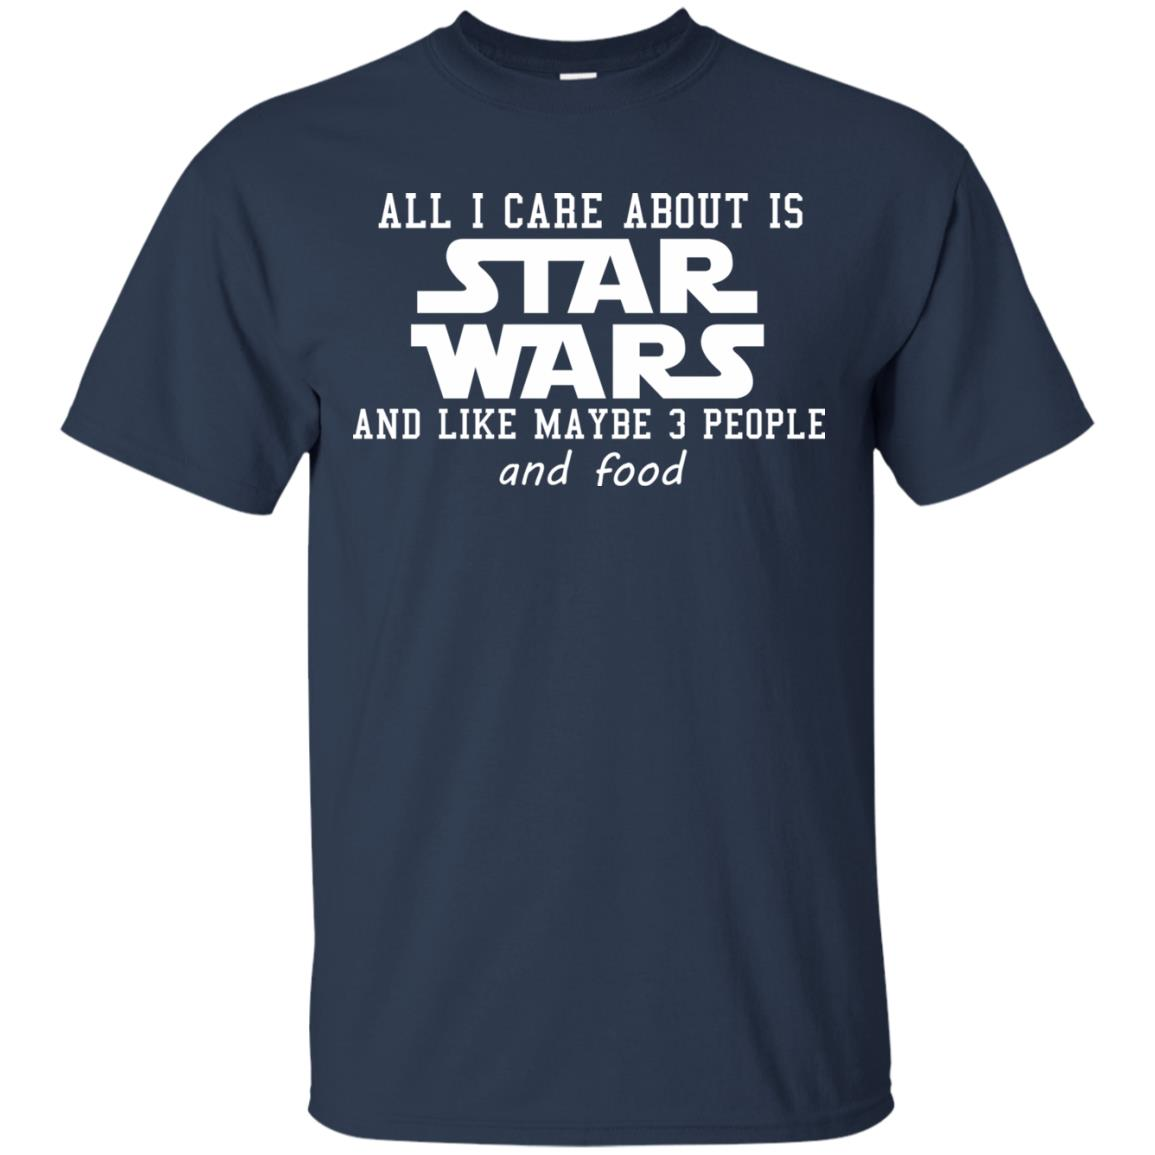 image 601 - All I care about is Star Wars & like maybe 3 people & food